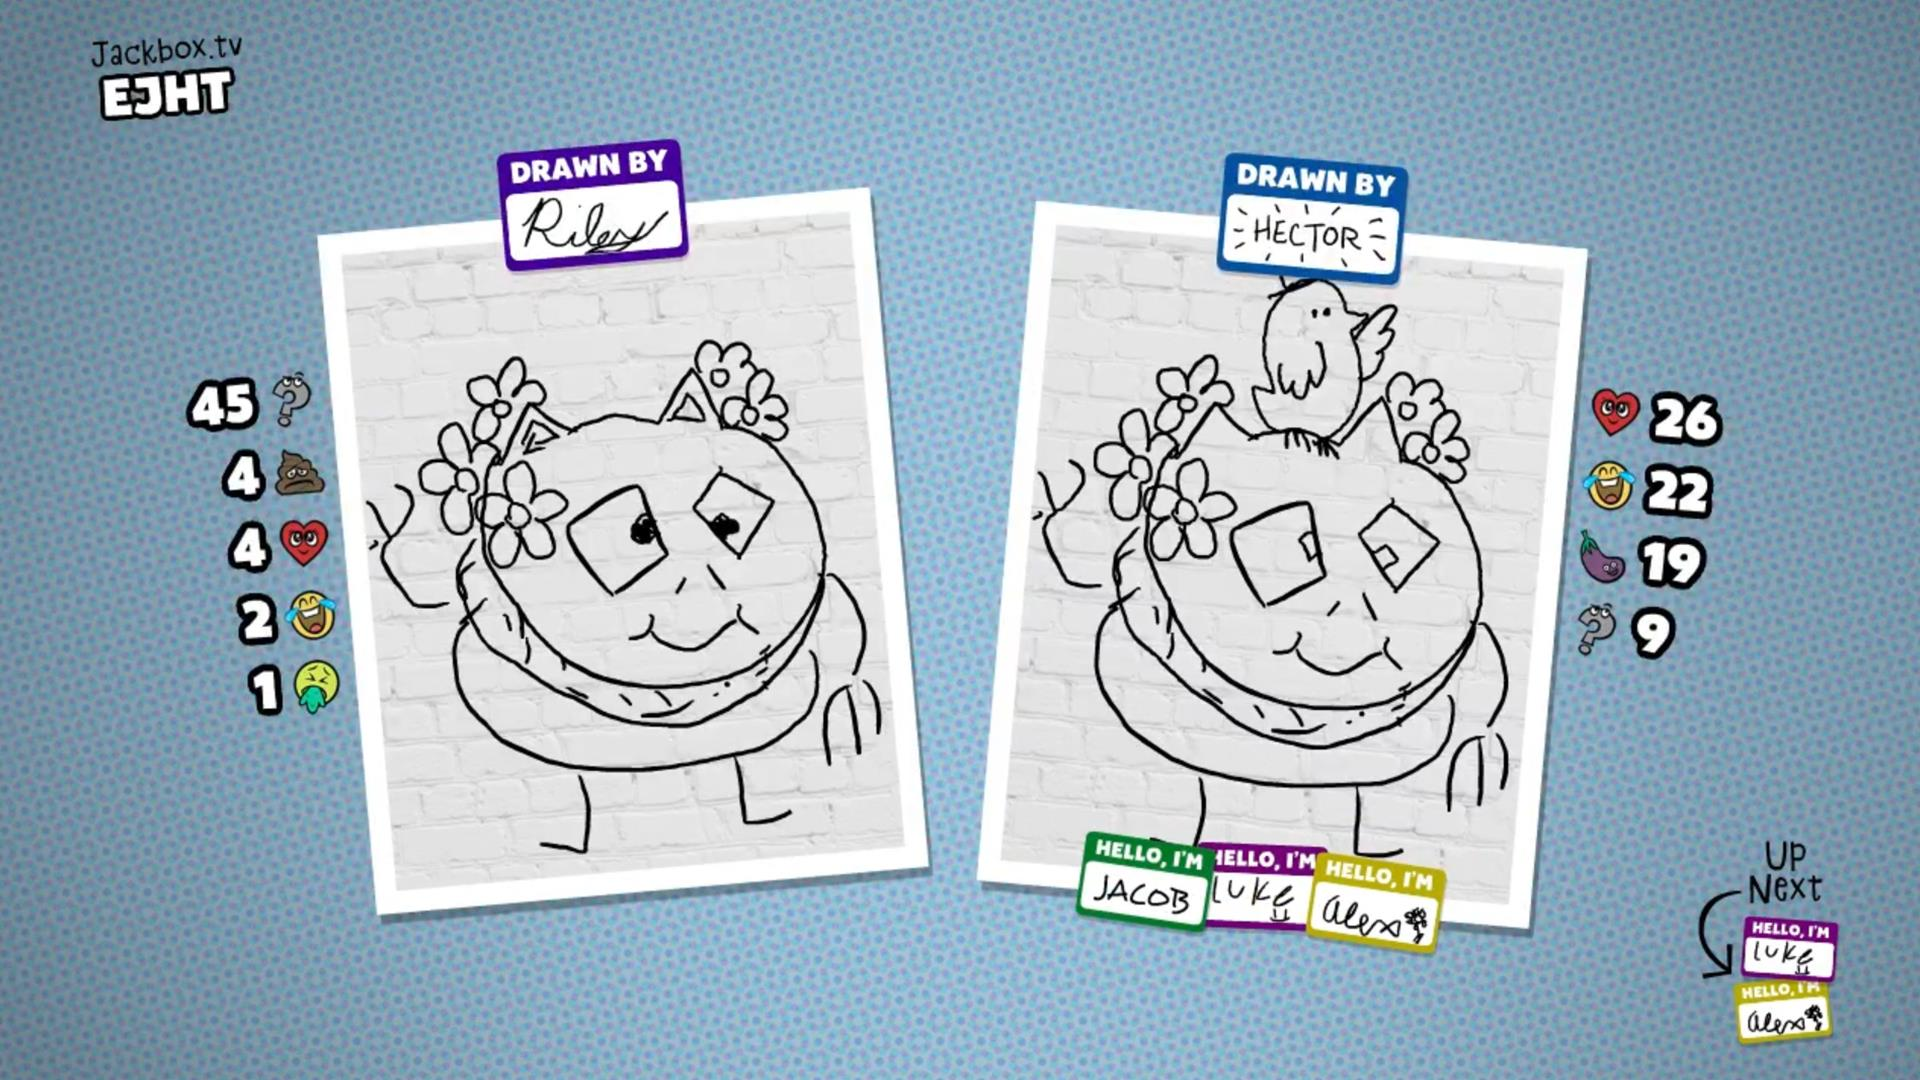 Jackbox Party Pack 4 Review -- Jack is Back, and Better Than Ever